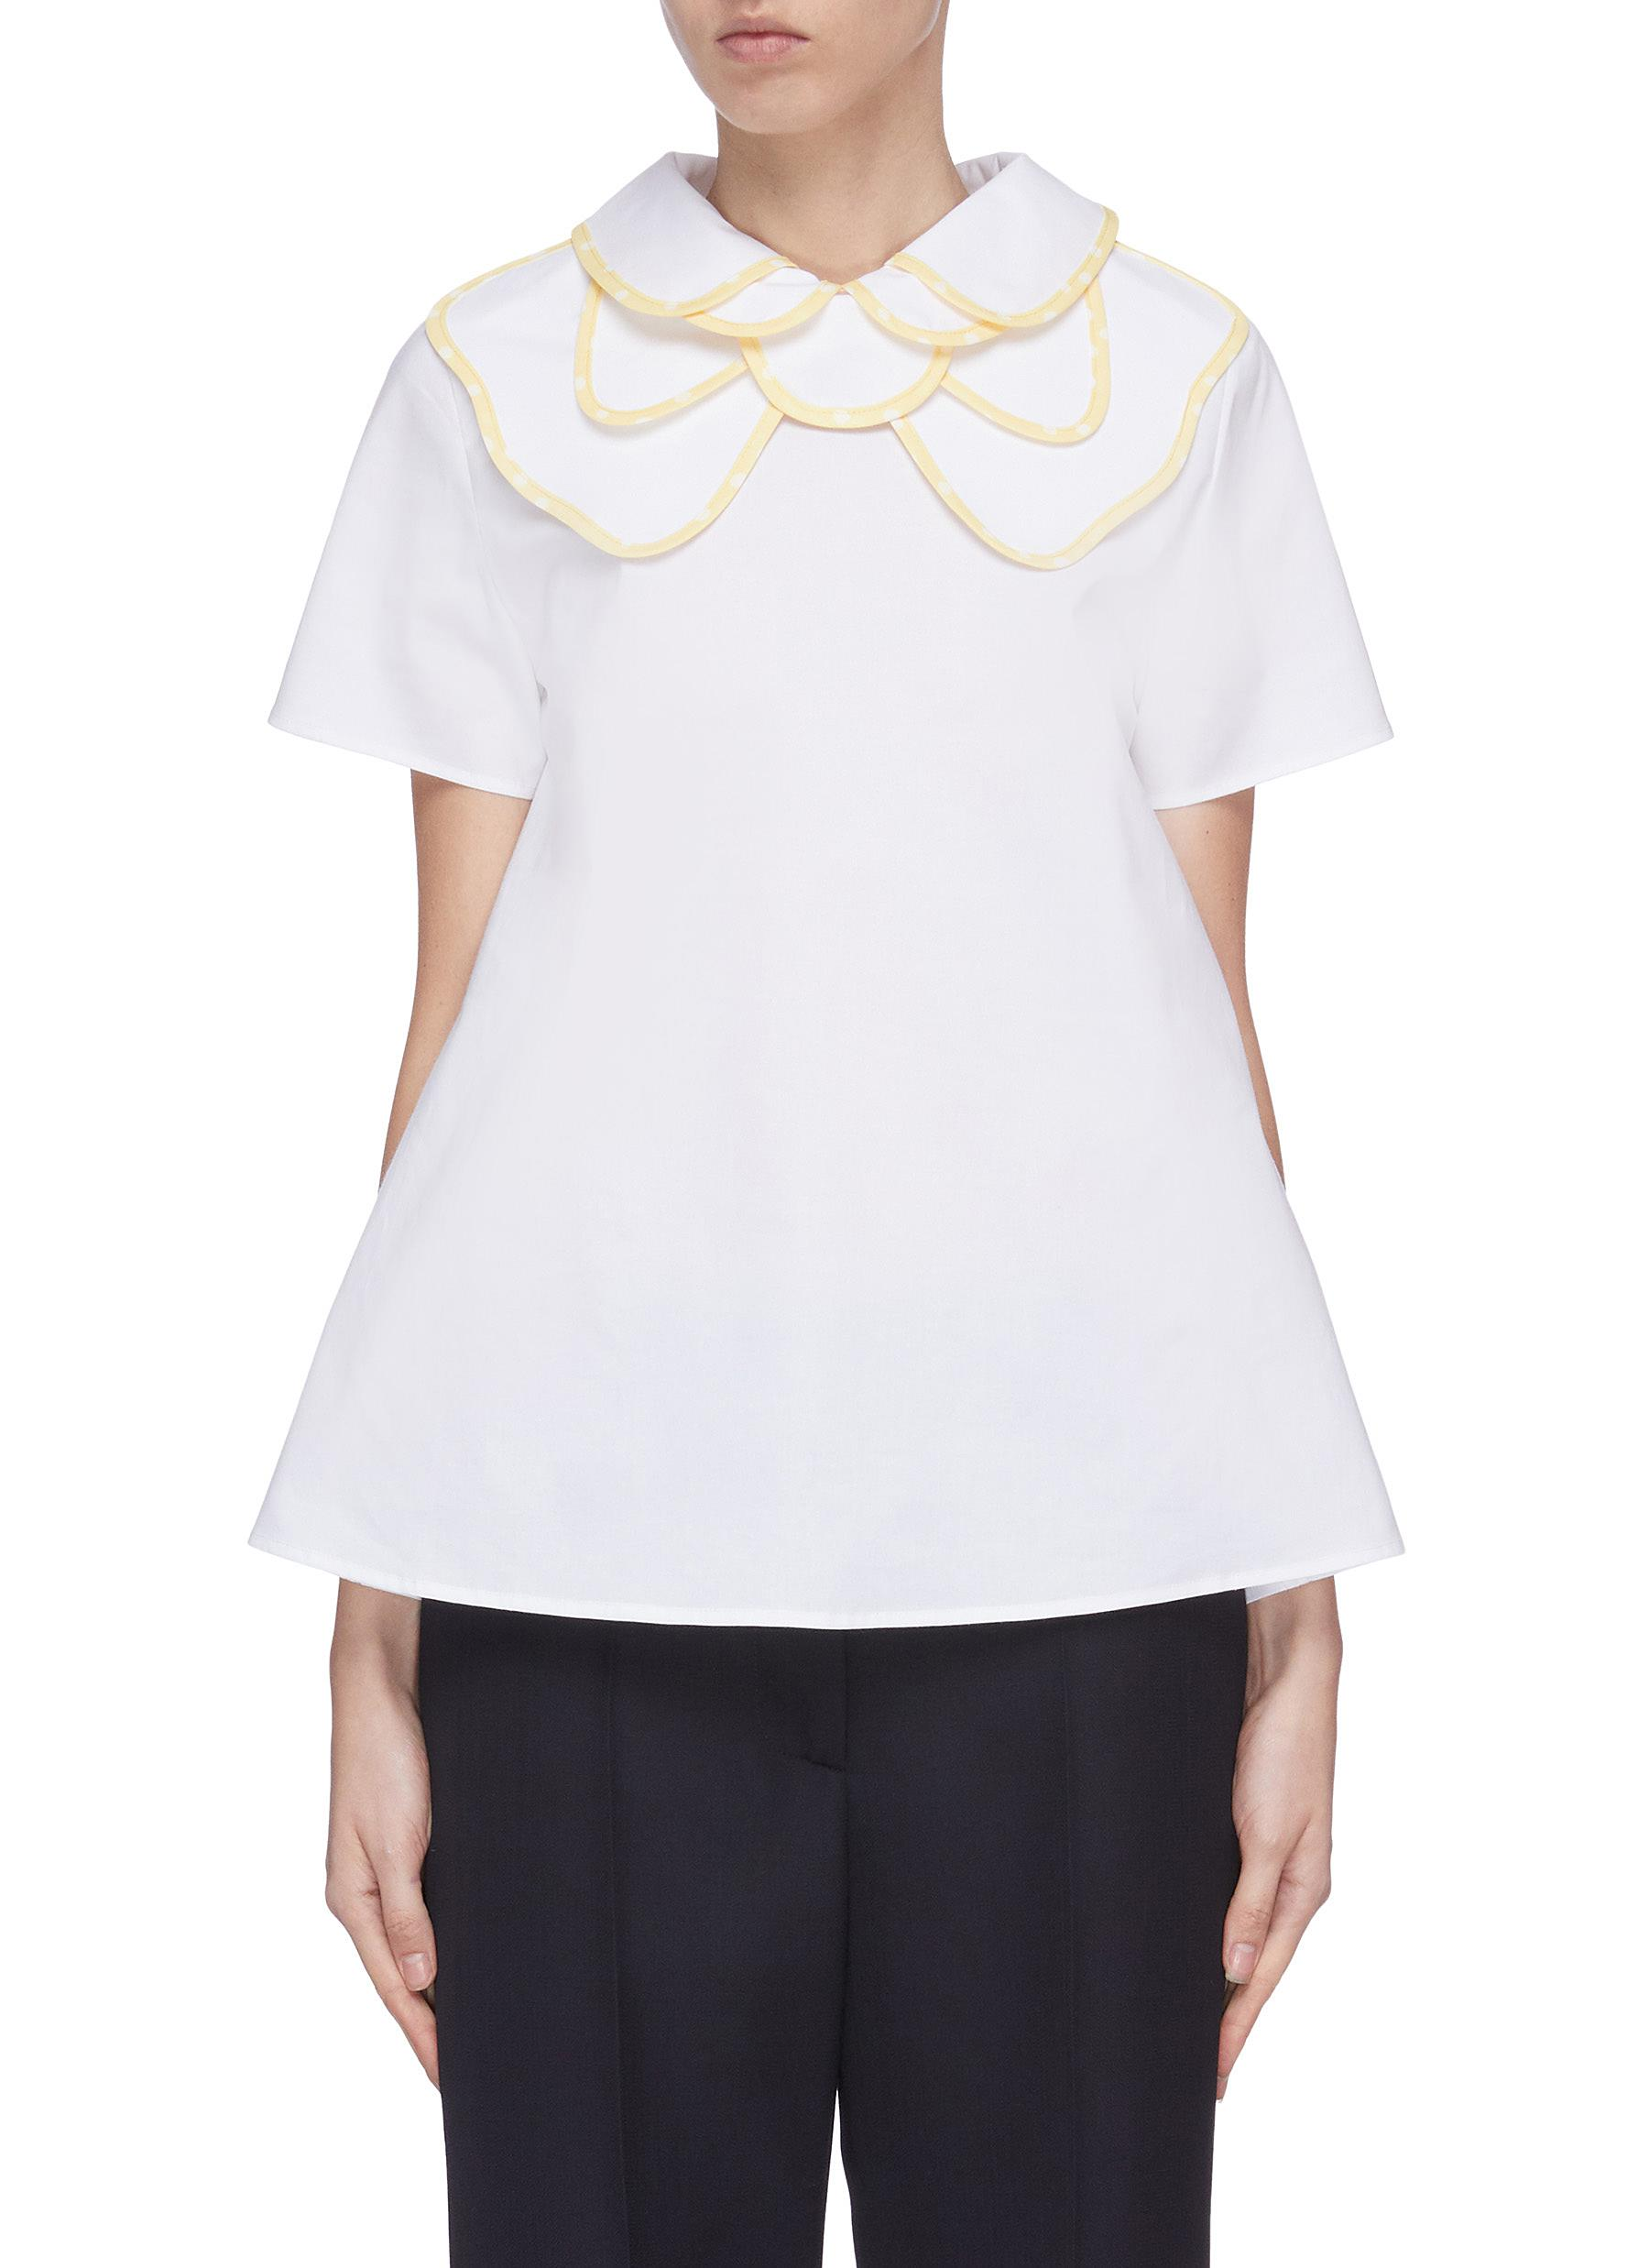 Buy Leal Daccarett Tops 'Brilliante' layered collar short sleeve top